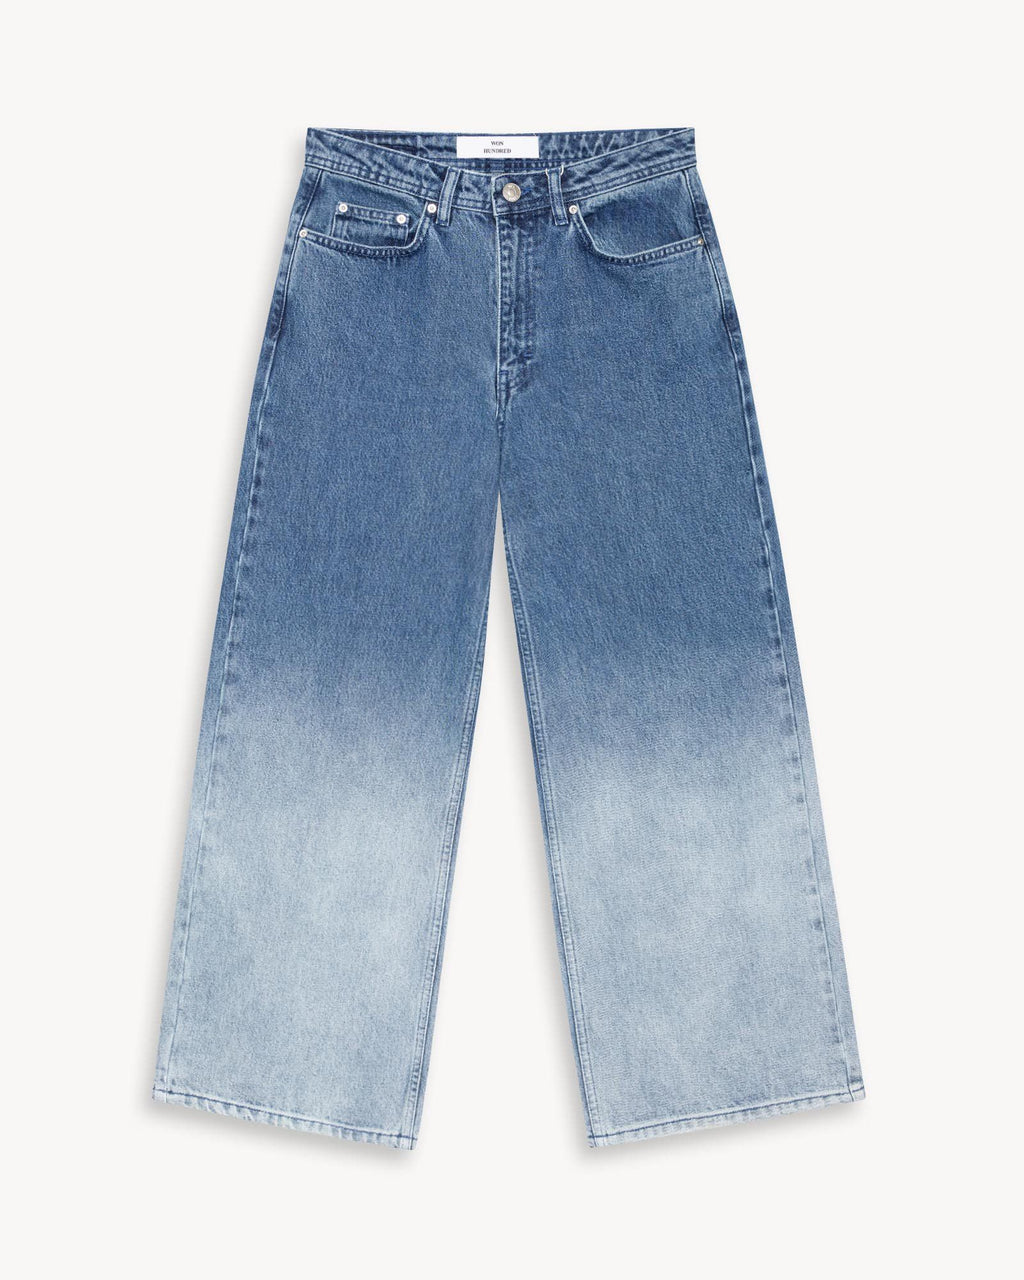 variant_1 | EN Blue High Waist Jeans Women won hundred | DE Jeanshose Highwaist Damen won hundred